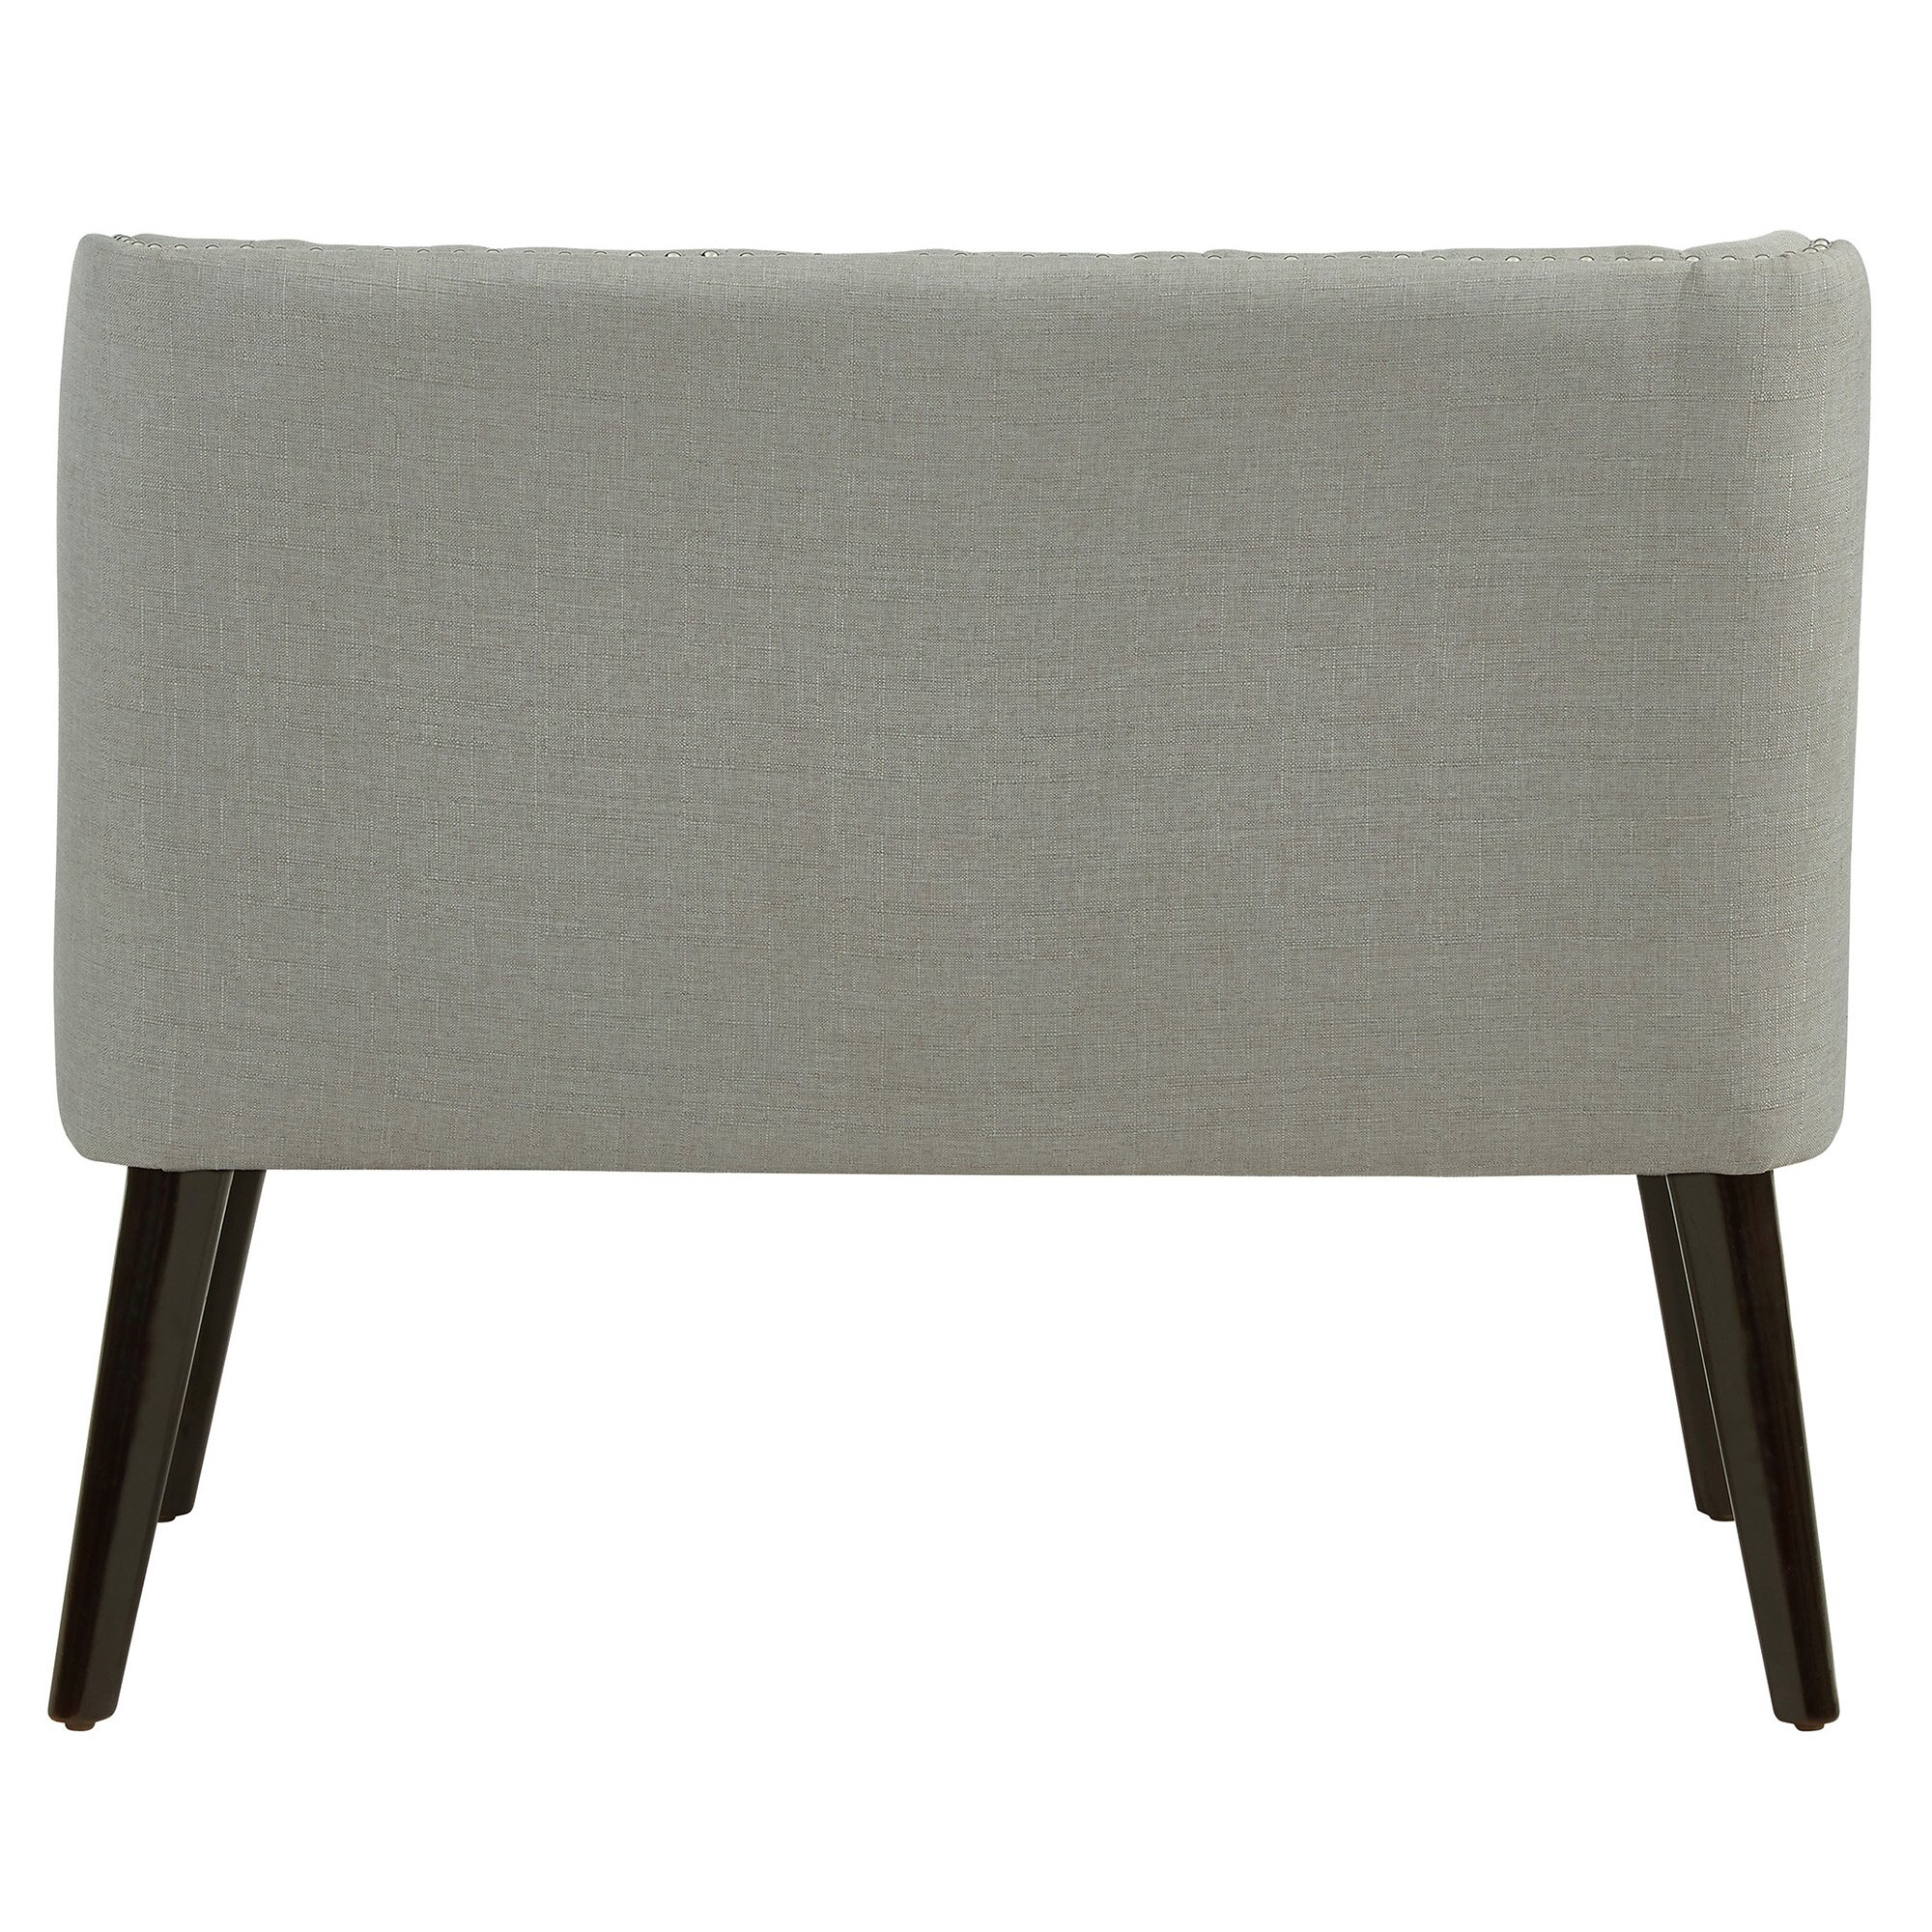 #282218  Doring Tufted Wing Back Settee Bedroom Bench & Reviews Wayfair with 2000x2000 px of Most Effective Settee Bench With Back 20002000 wallpaper @ avoidforclosure.info